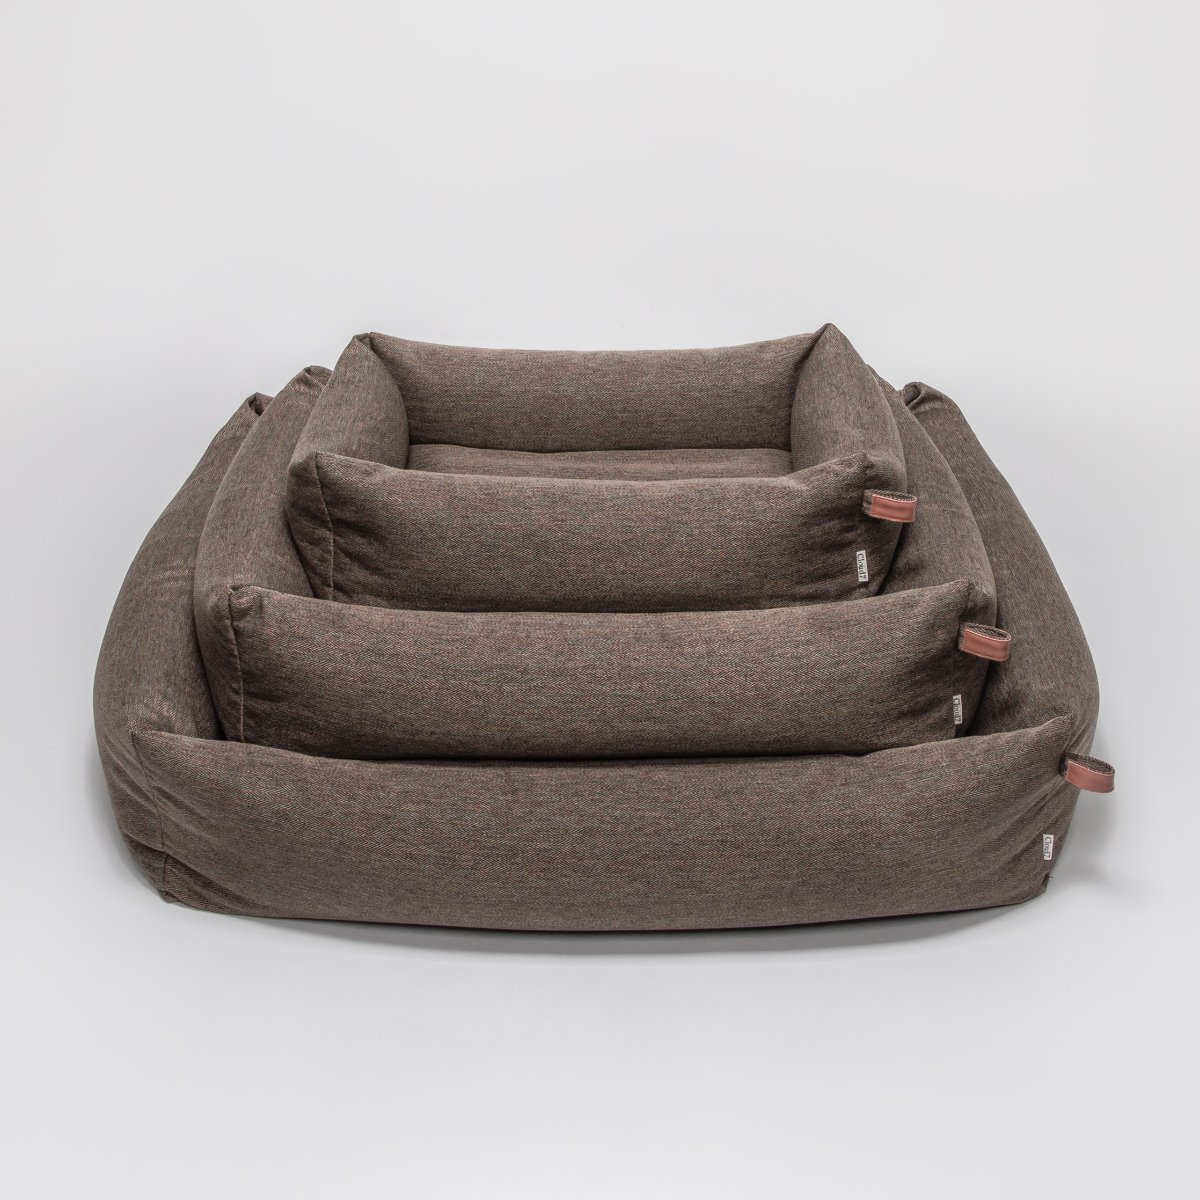 DOG BED SLEEPY HERRINGBONE BROWN